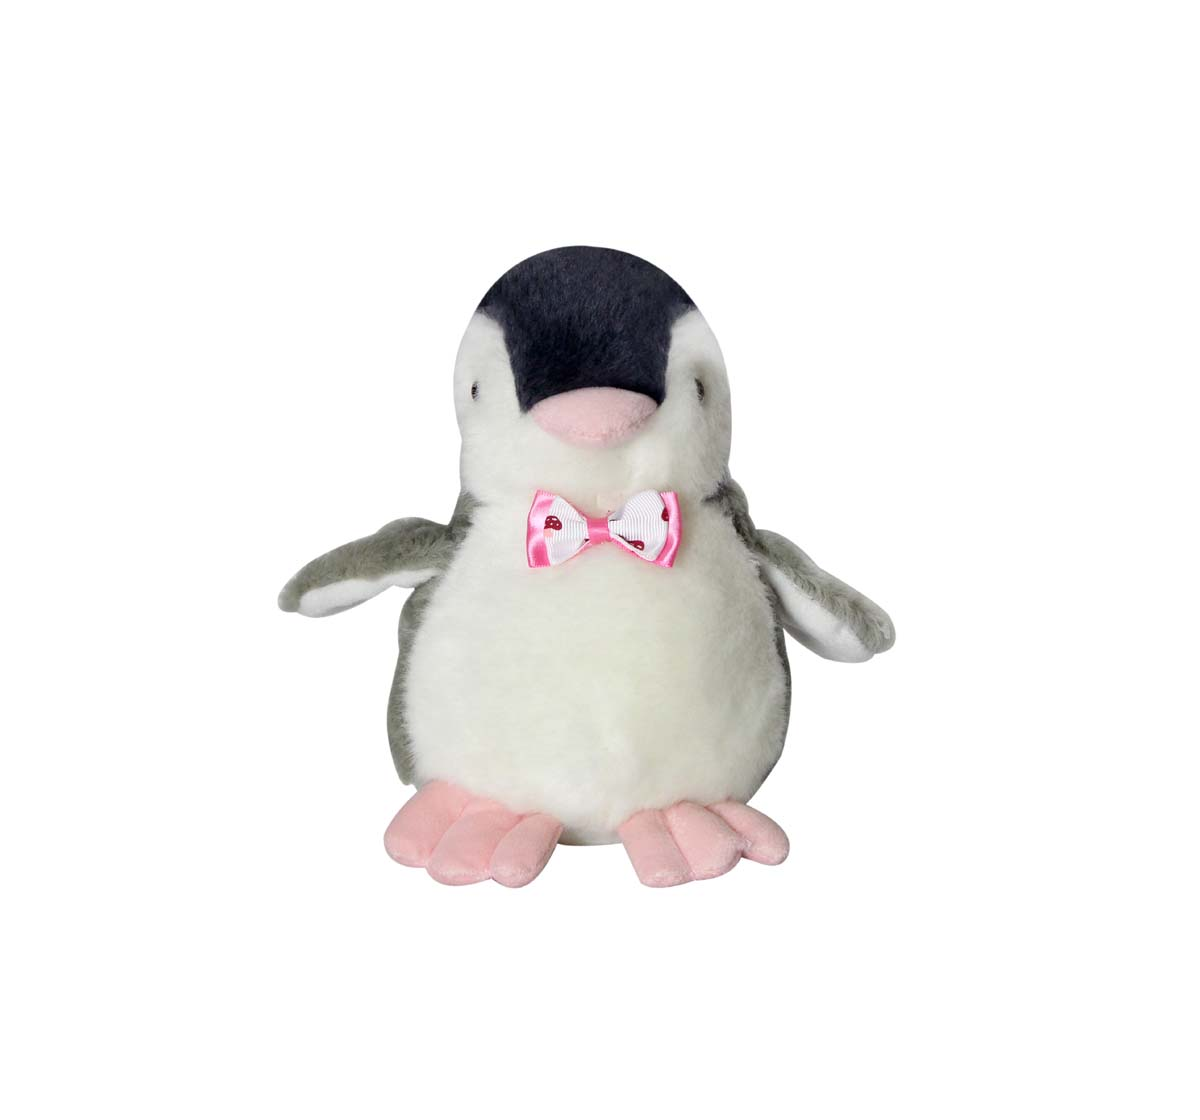 Soft Buddies | Soft Buddies Gray Fat Penguin Car Rear Tray Table Quirky Soft Toys for Kids age 12M+ 19.05 Cm